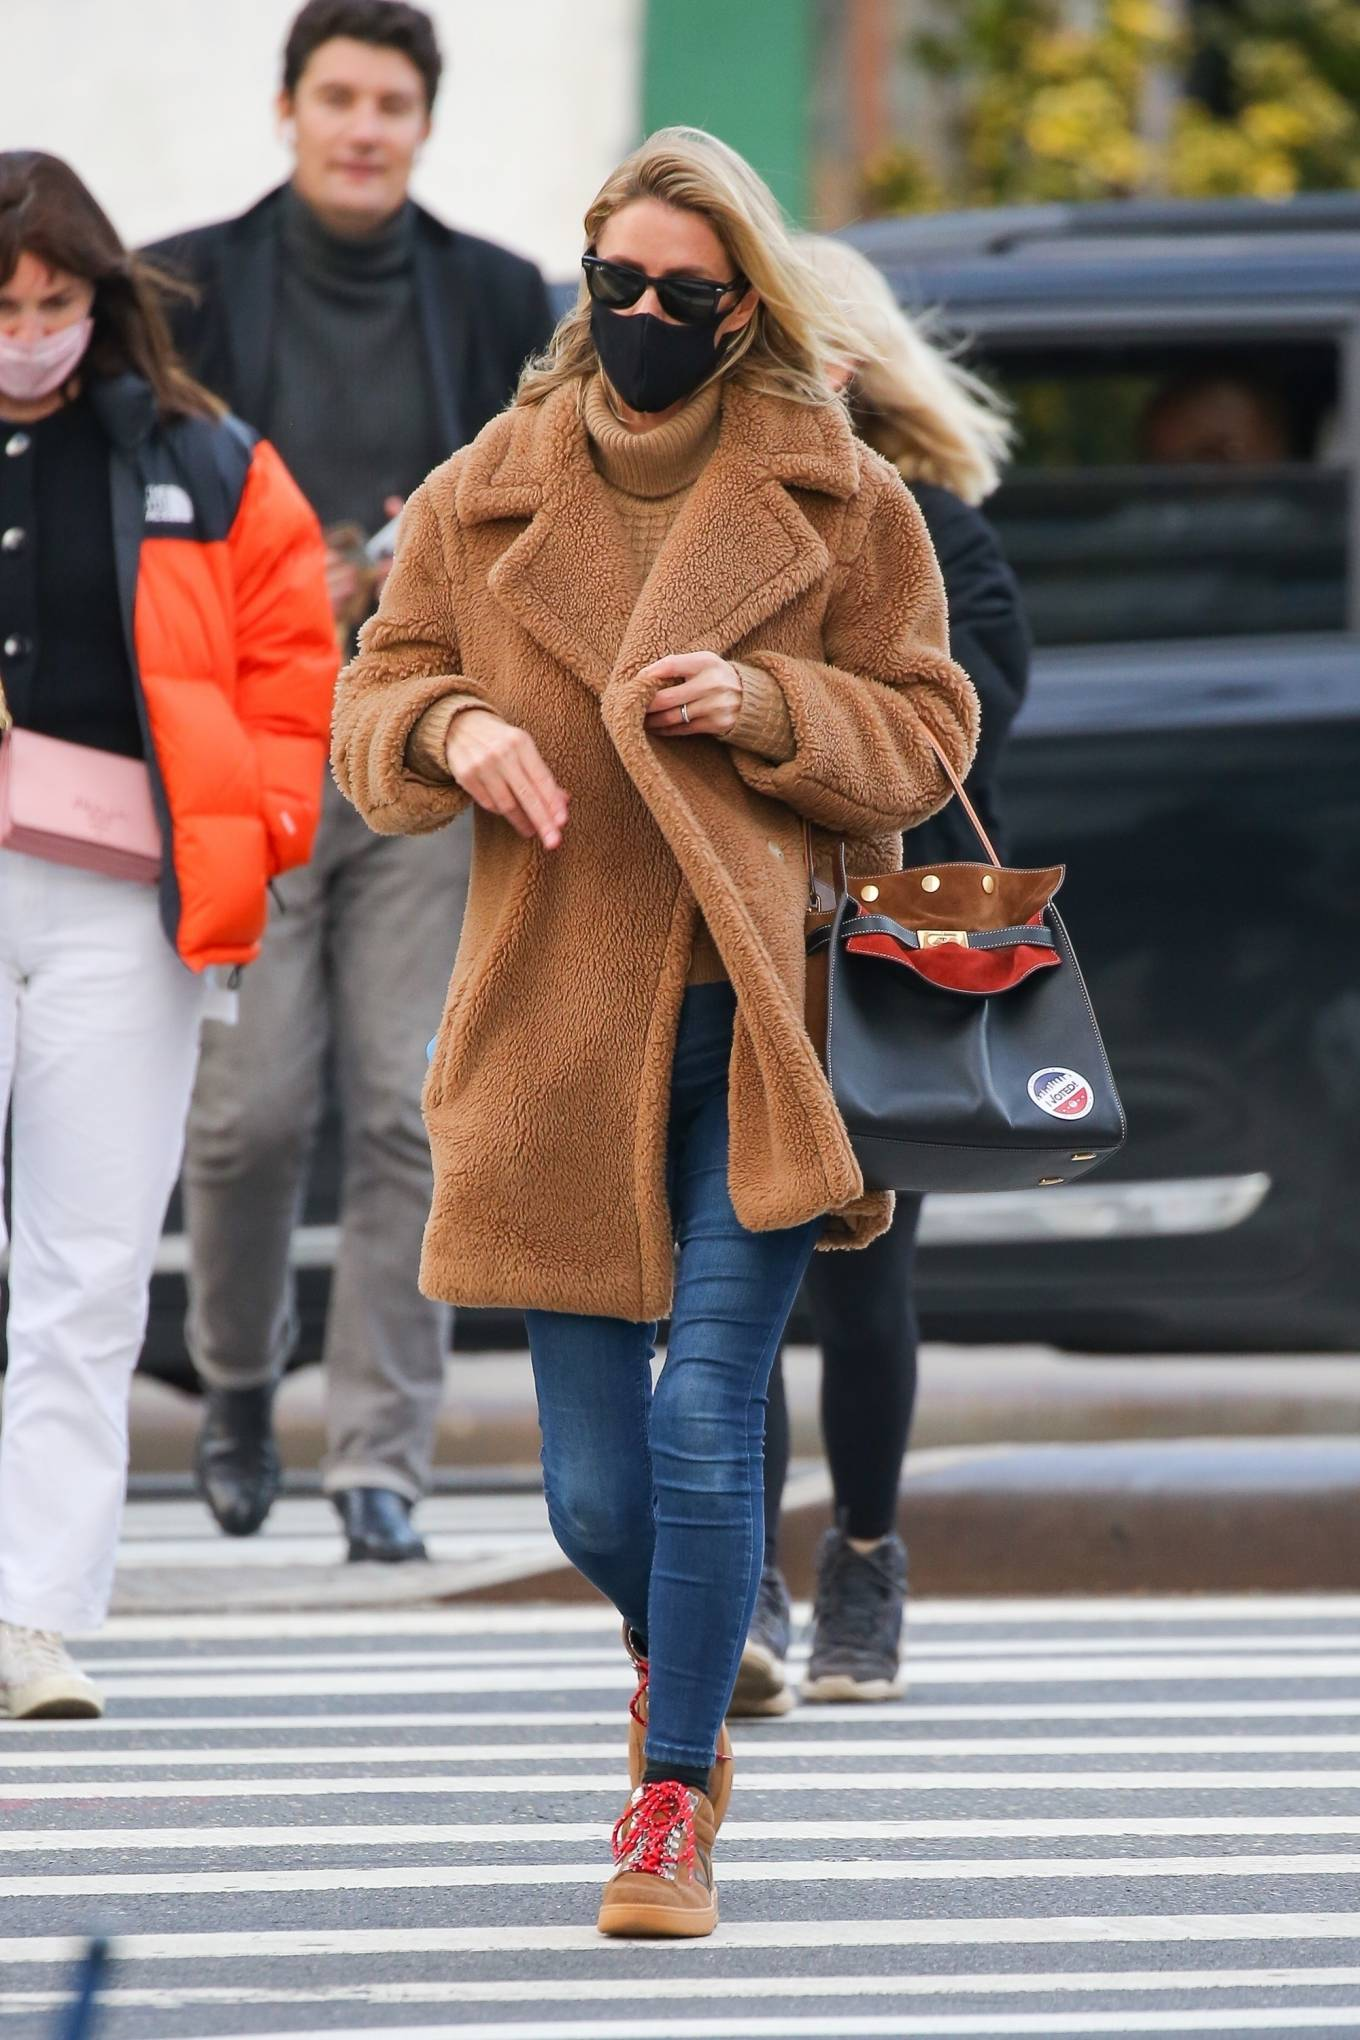 Nicky Hilton - Casting her vote at the polls in New York